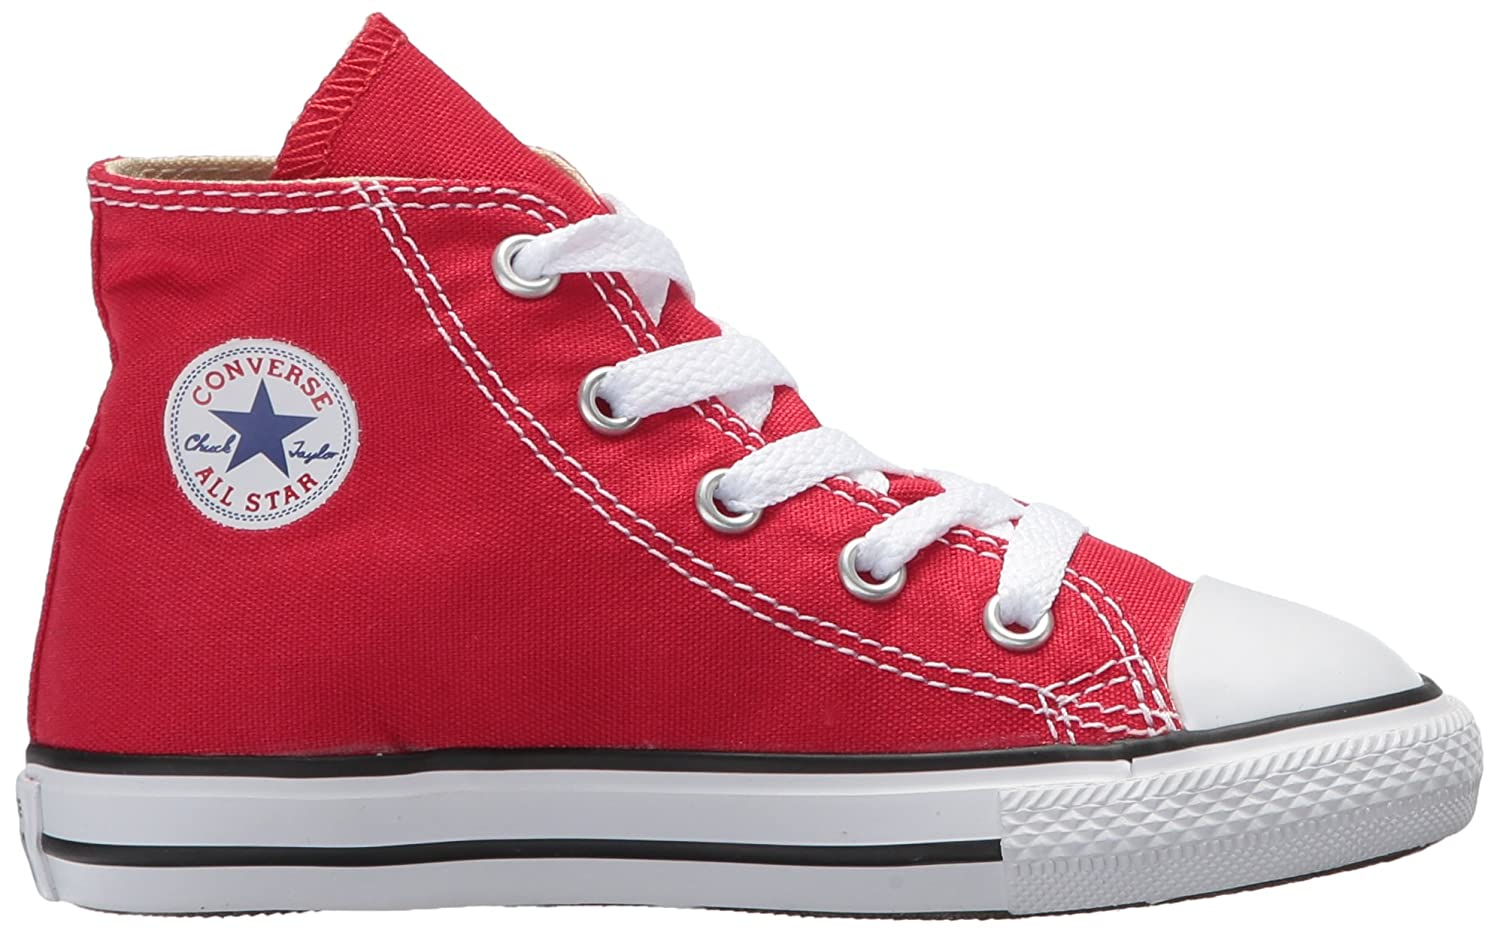 Converse Kids' Canvas Chuck Taylor All Star Canvas Kids' High Top Sneaker B0000938CZ 10 M US Toddler|Red f2ca0c